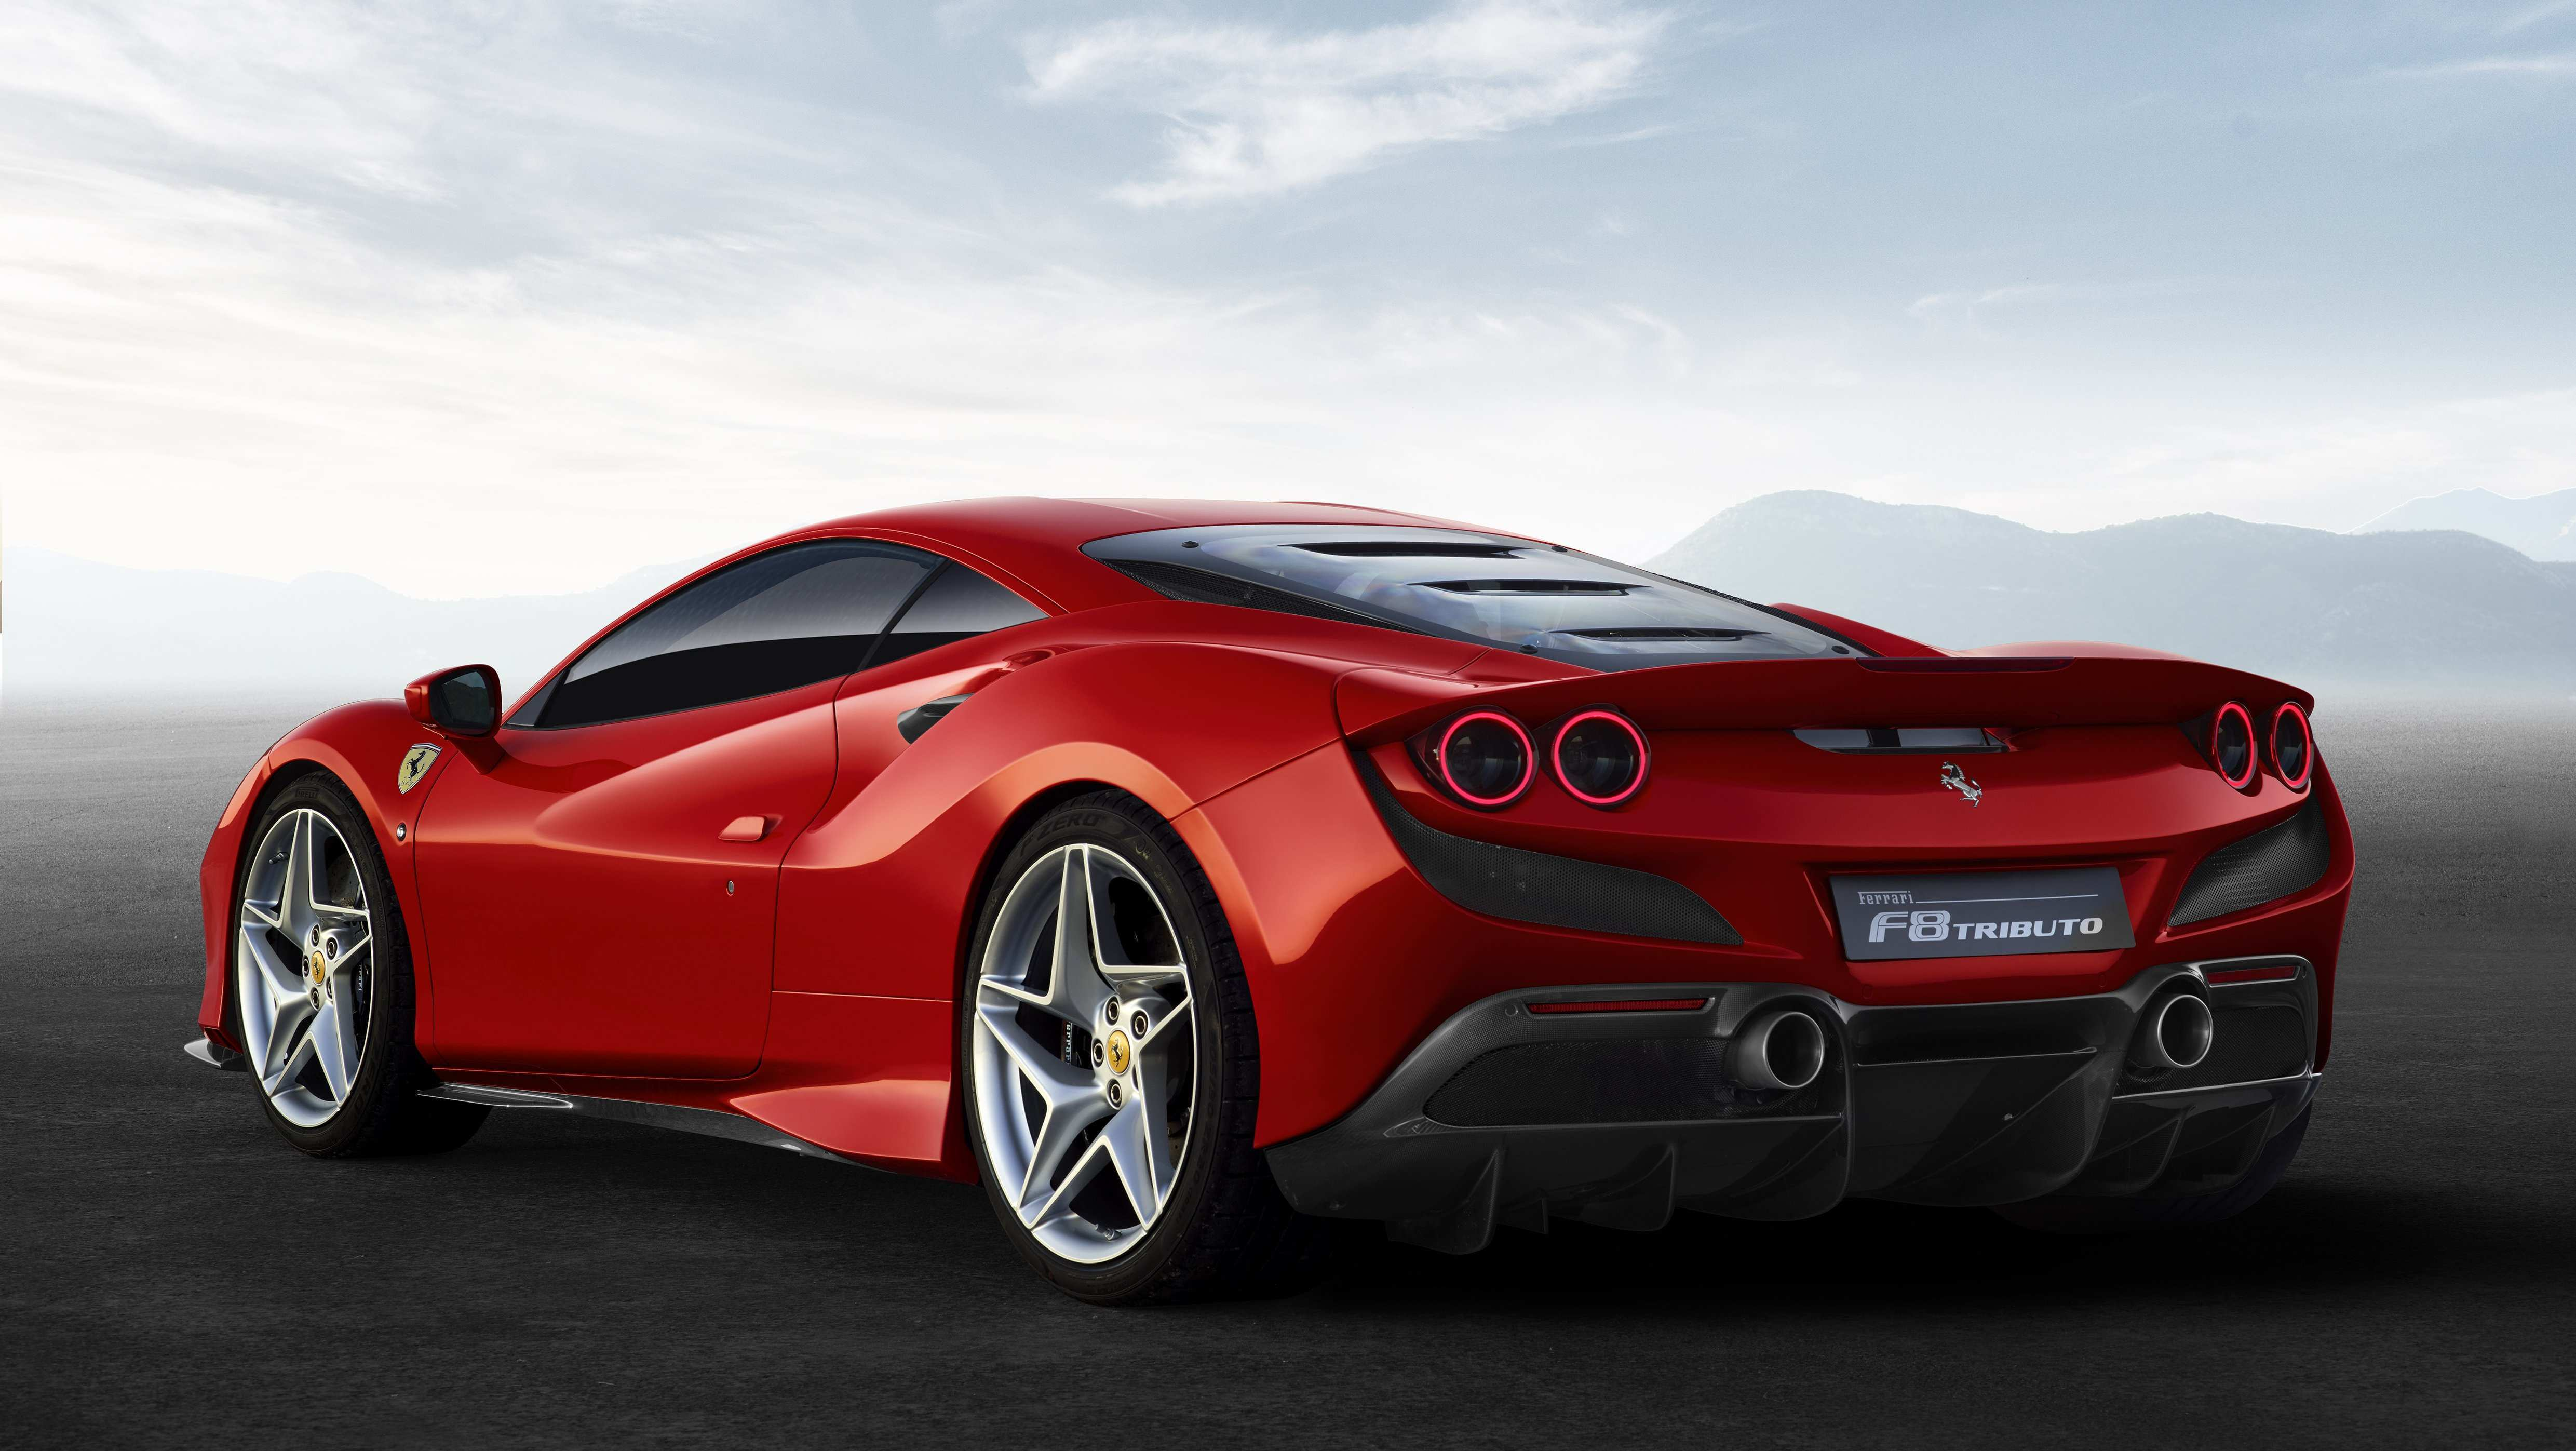 89 The Ferrari 2020 F8 Tributo Images